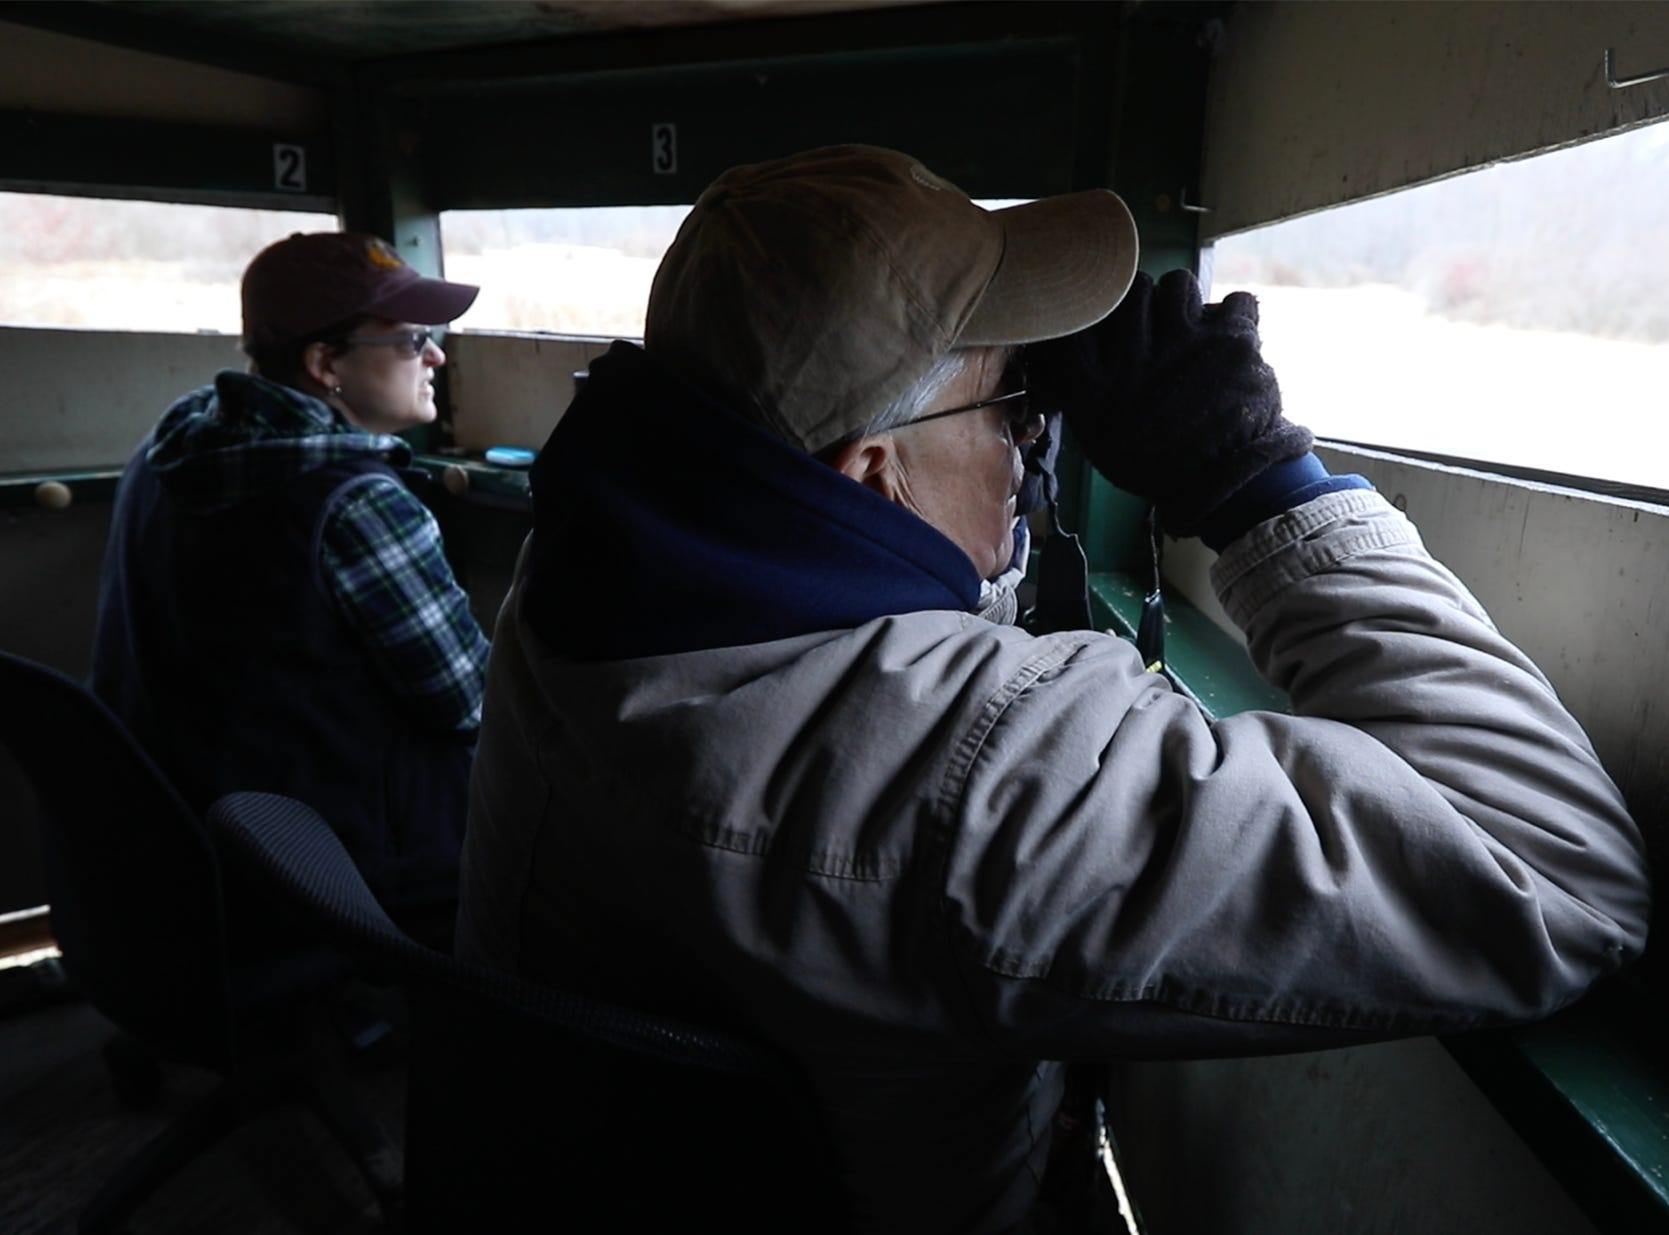 Barb French and Jim Saller look off to see if a hawk has entered the area.